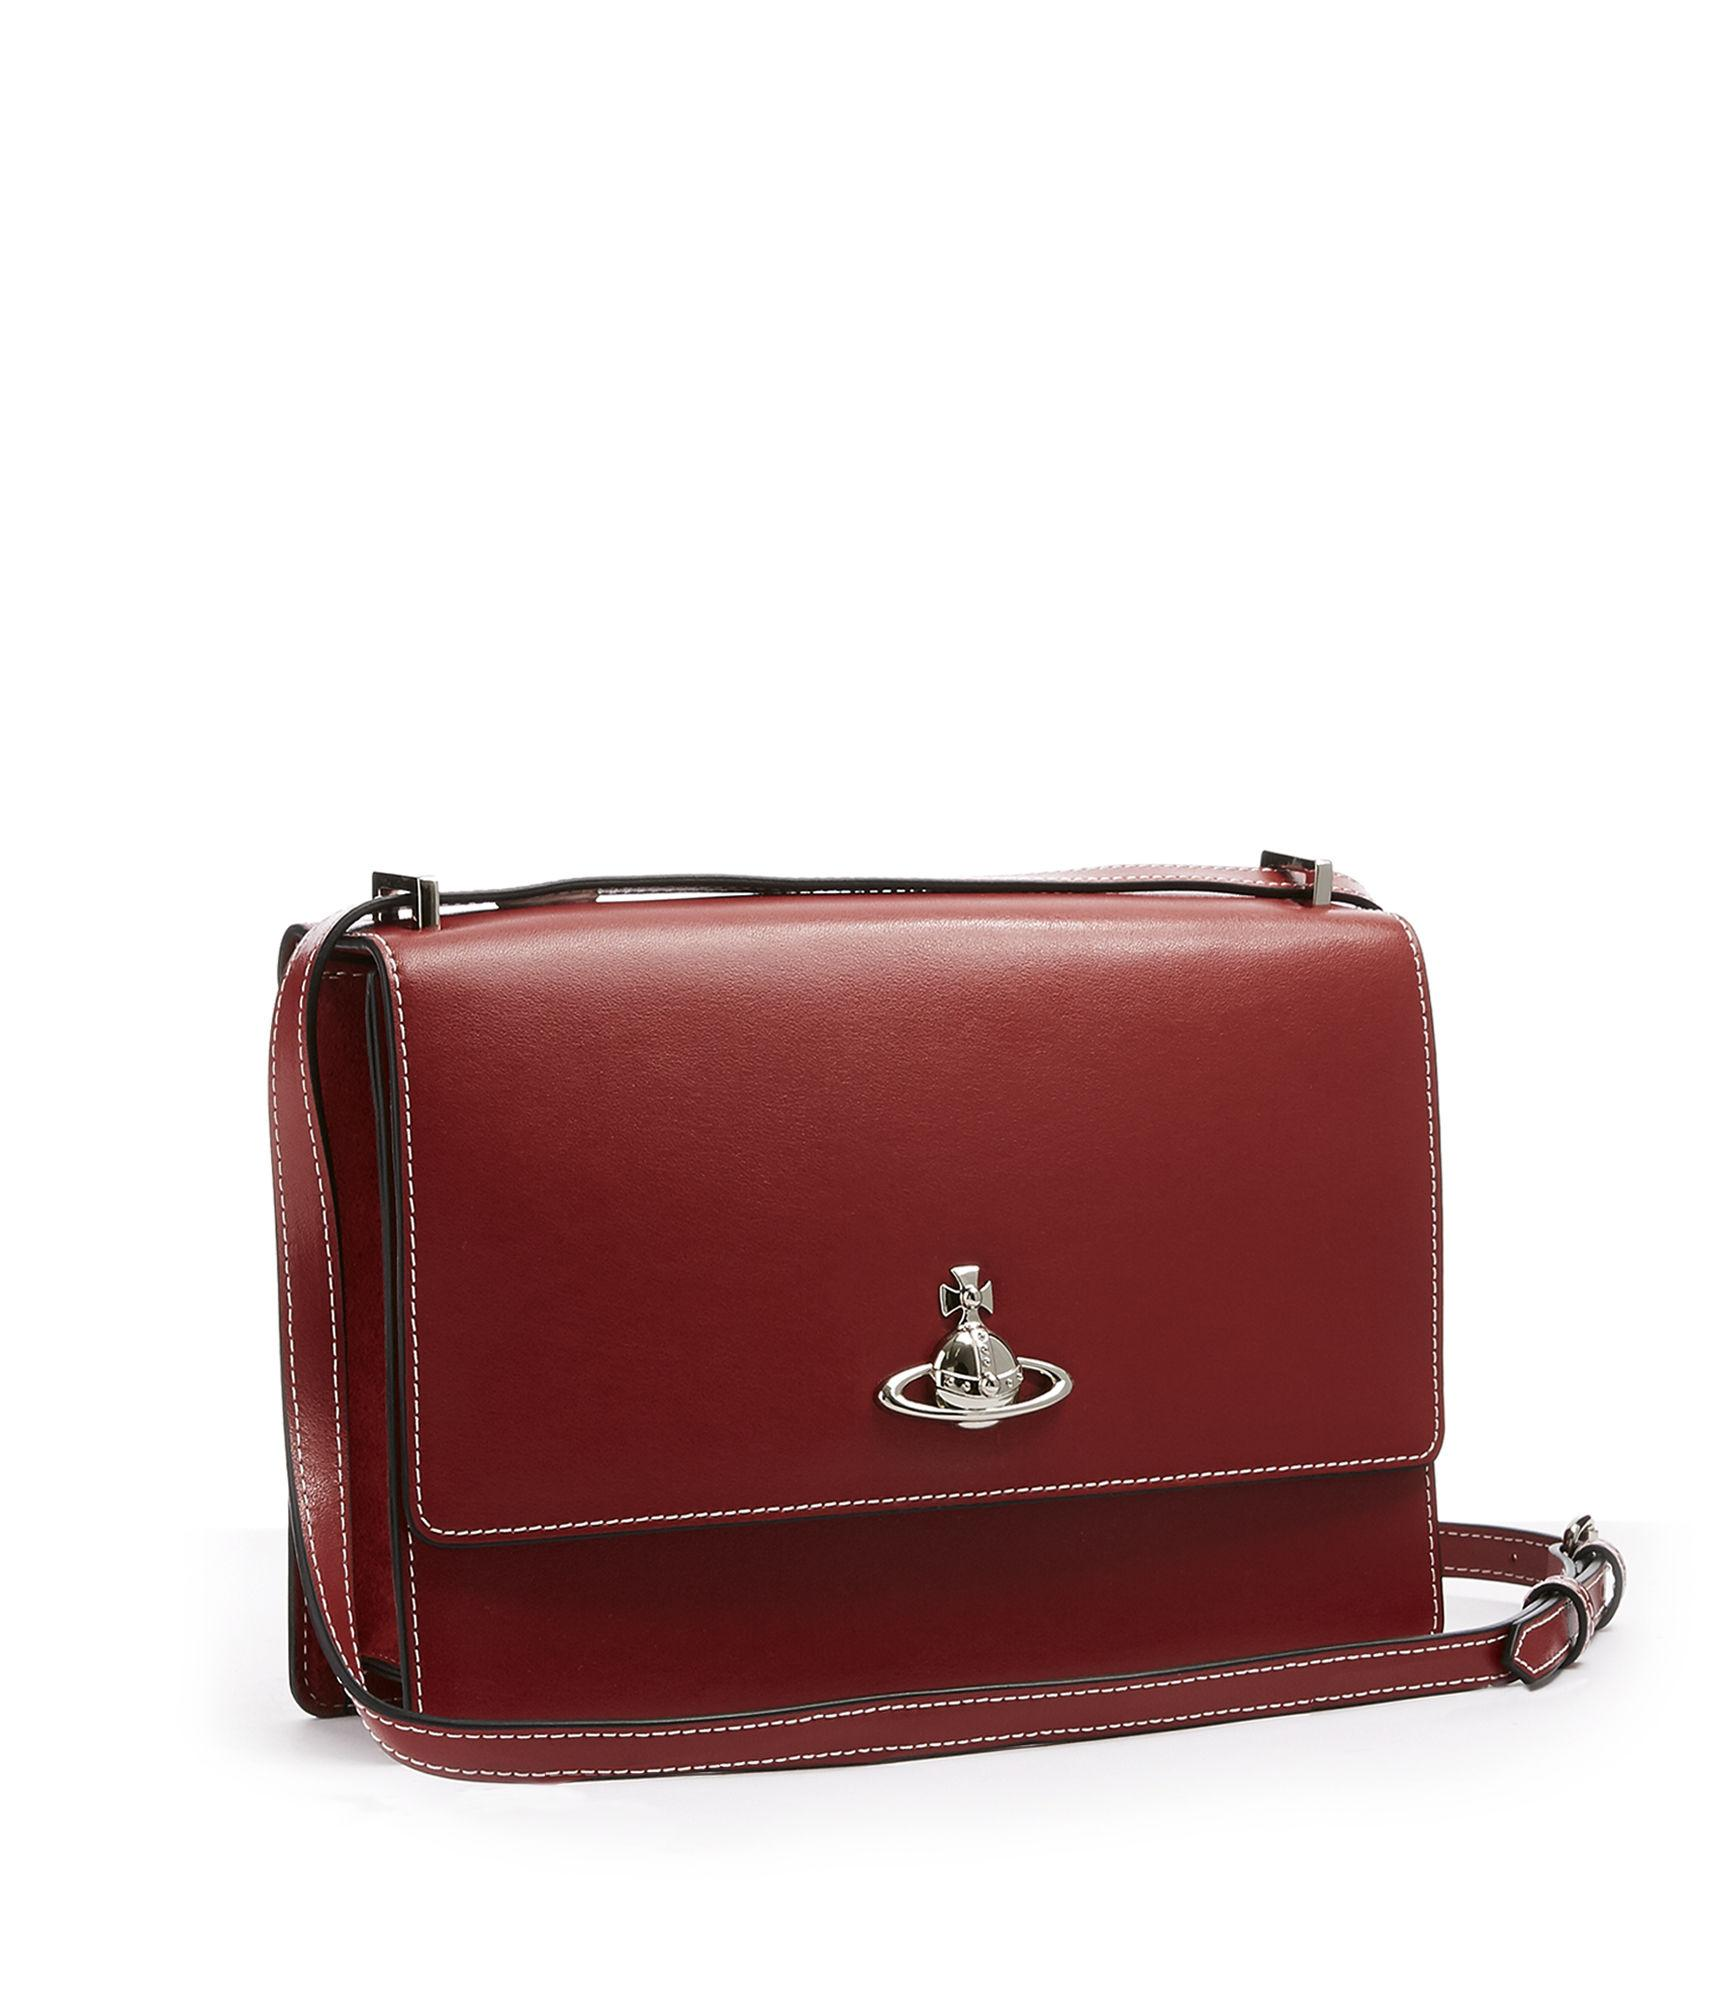 3c7ce1faee9c Vivienne Westwood Matilda Large Bag With Flap Red | ModeSens